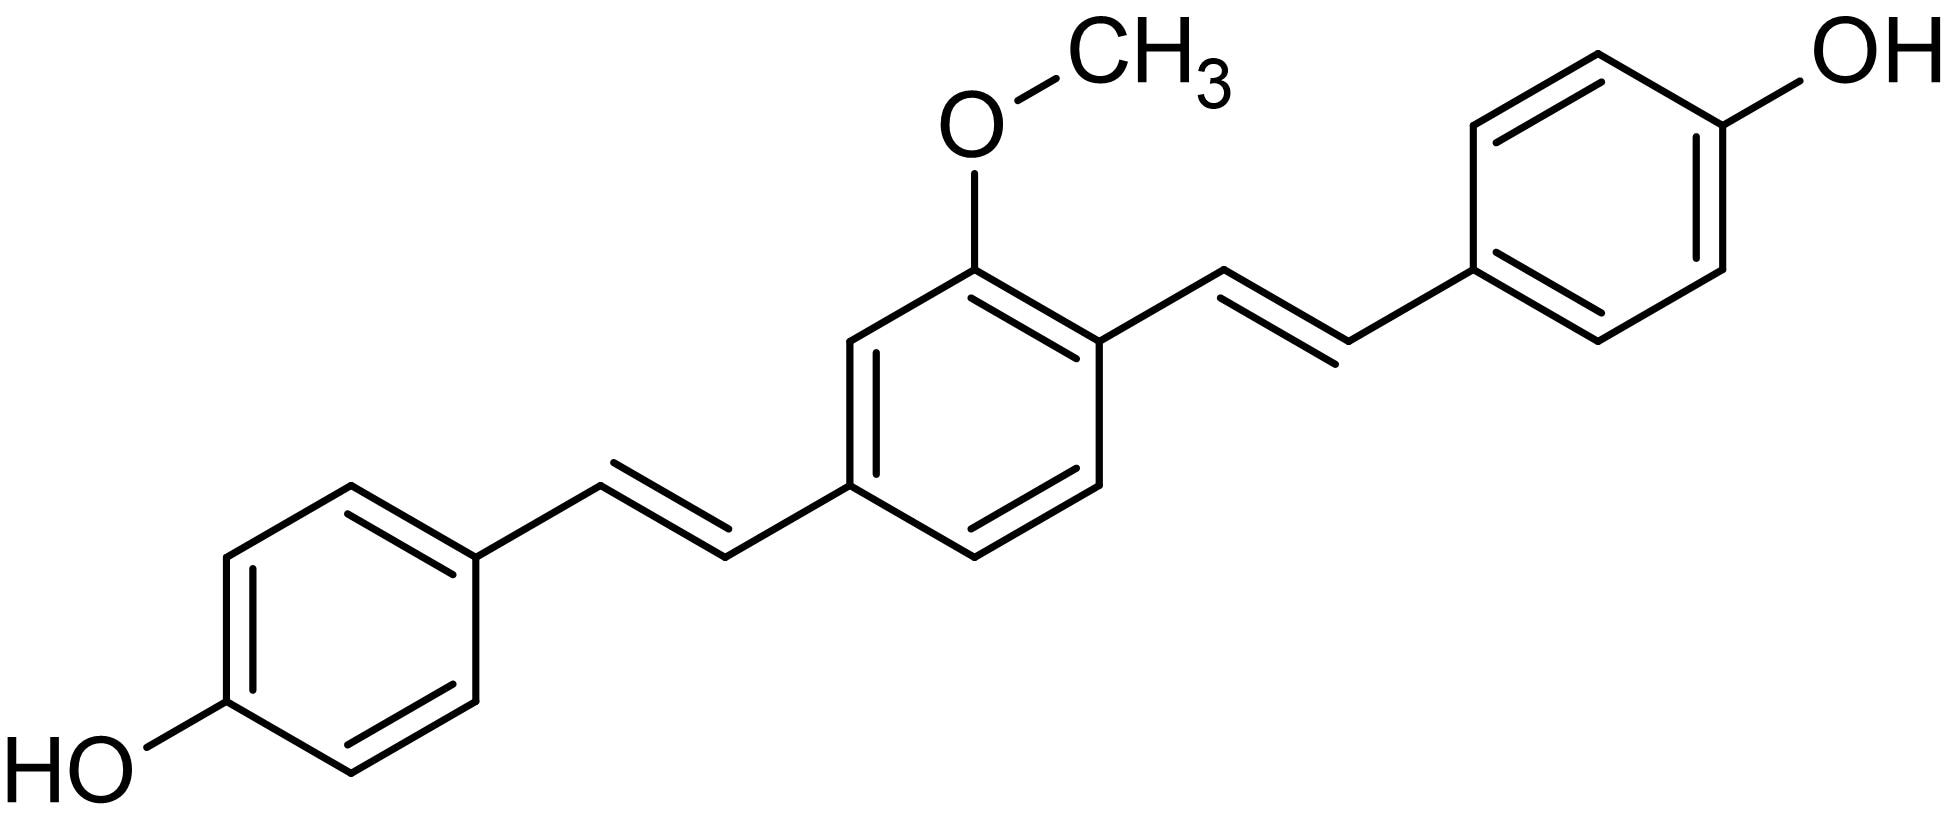 Chemical Structure - Methoxy-X04, amyloid beta fluorescent marker (ab142818)